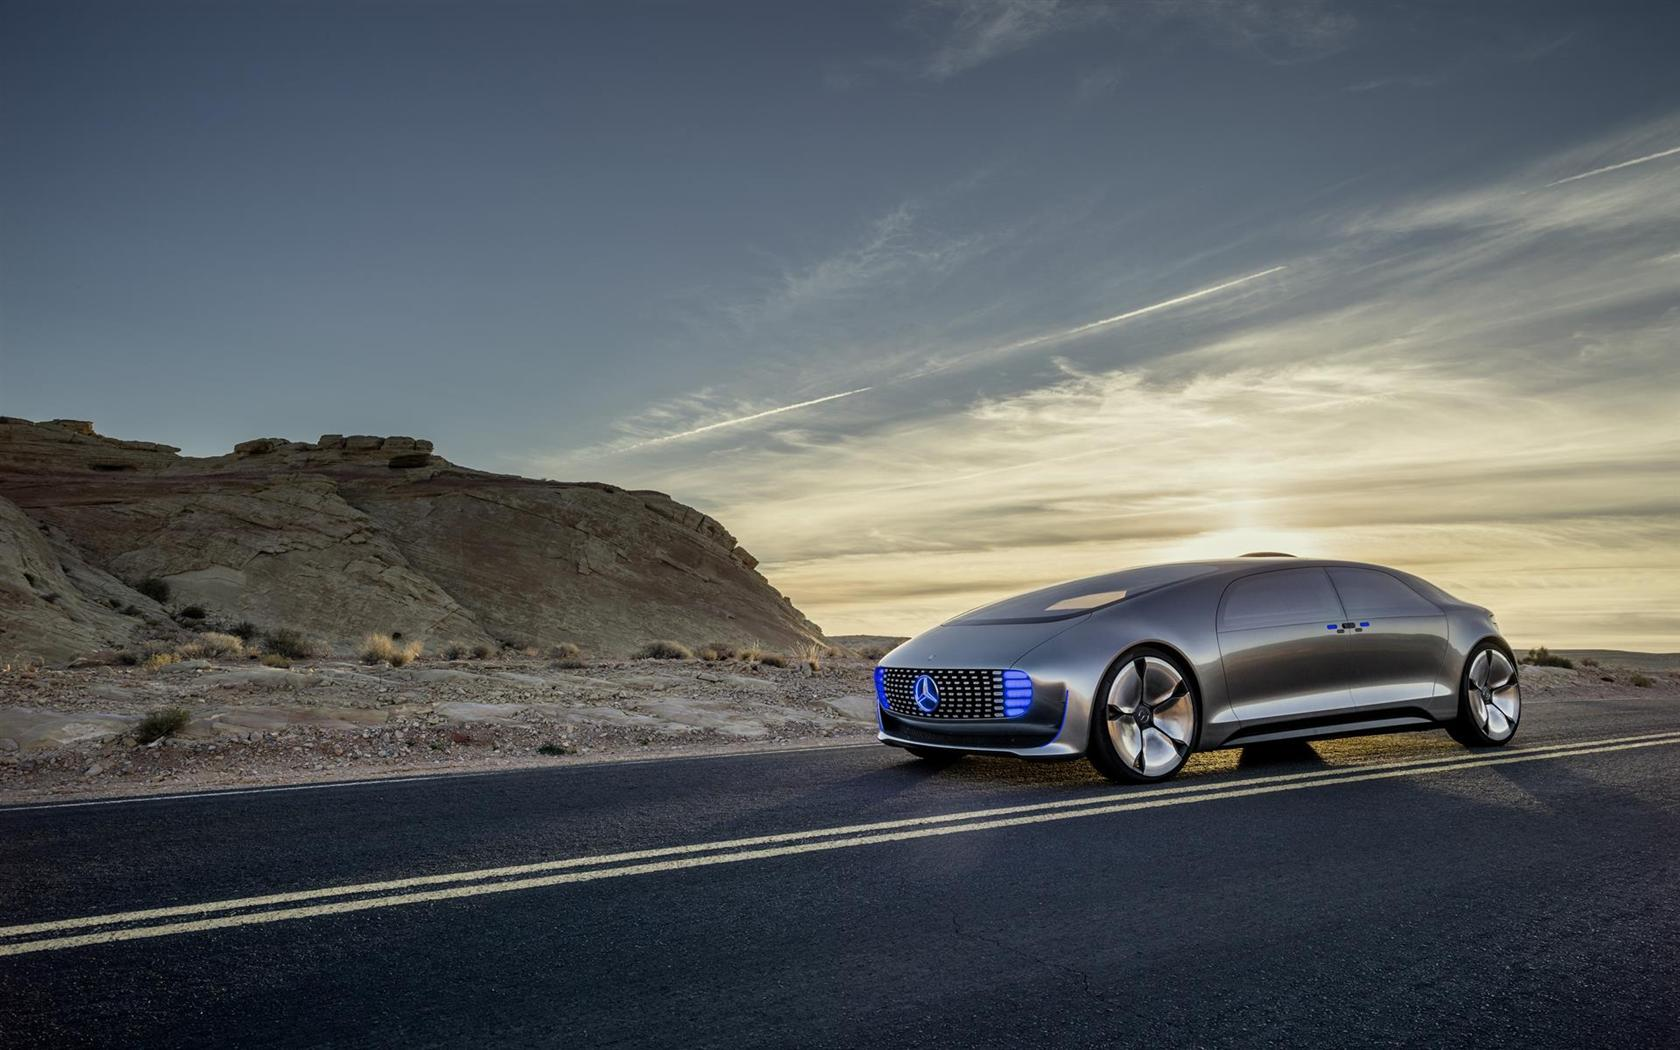 2015 mercedes benz f 015 luxury in motion concept images for Mercedes benz f 015 price